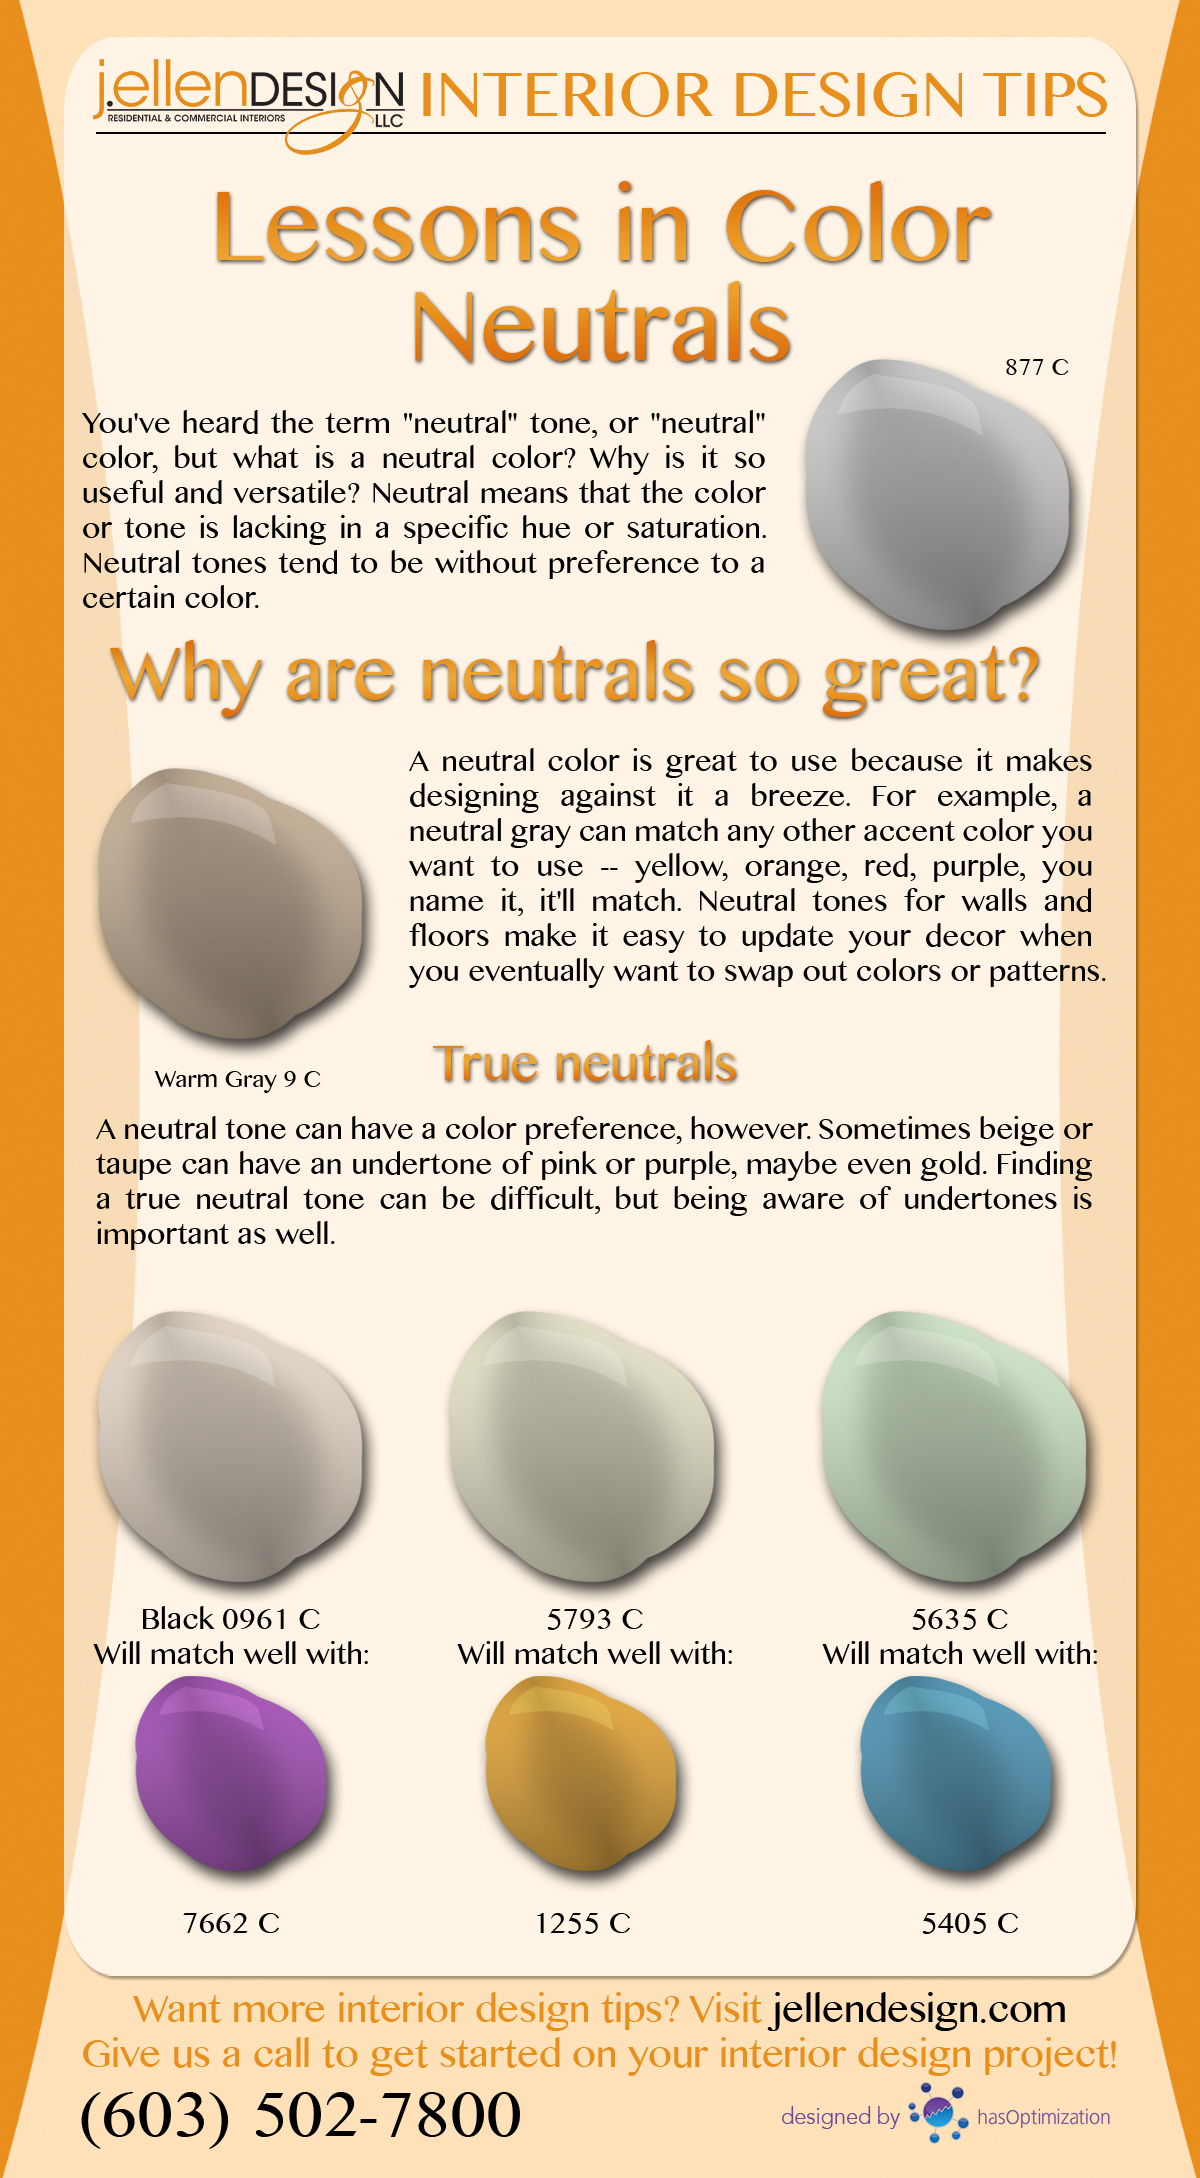 Neutral Color & What it is